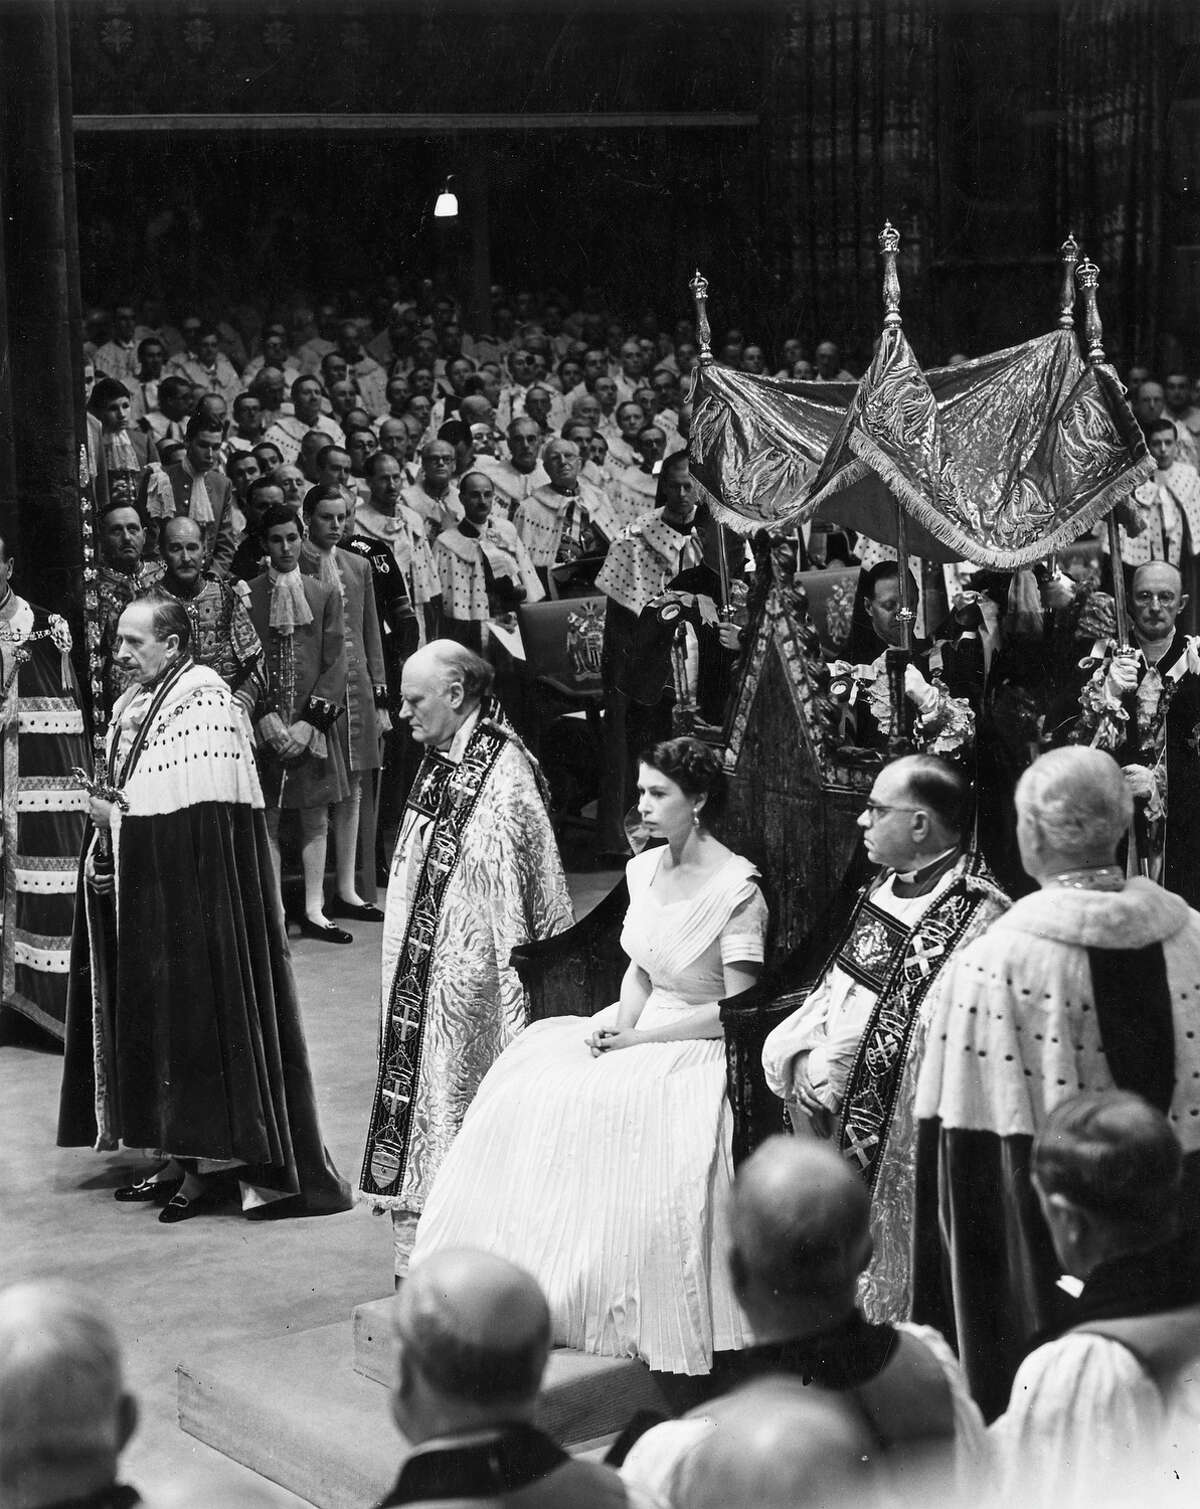 Wearing a simple white dress and surrounded by dignitaries, Queen Elizabeth II sits in St Edward's Chair at her coronation ceremony before she is appointed. Behind her four Knights of the Garter hold the canopy that will be held above her head.